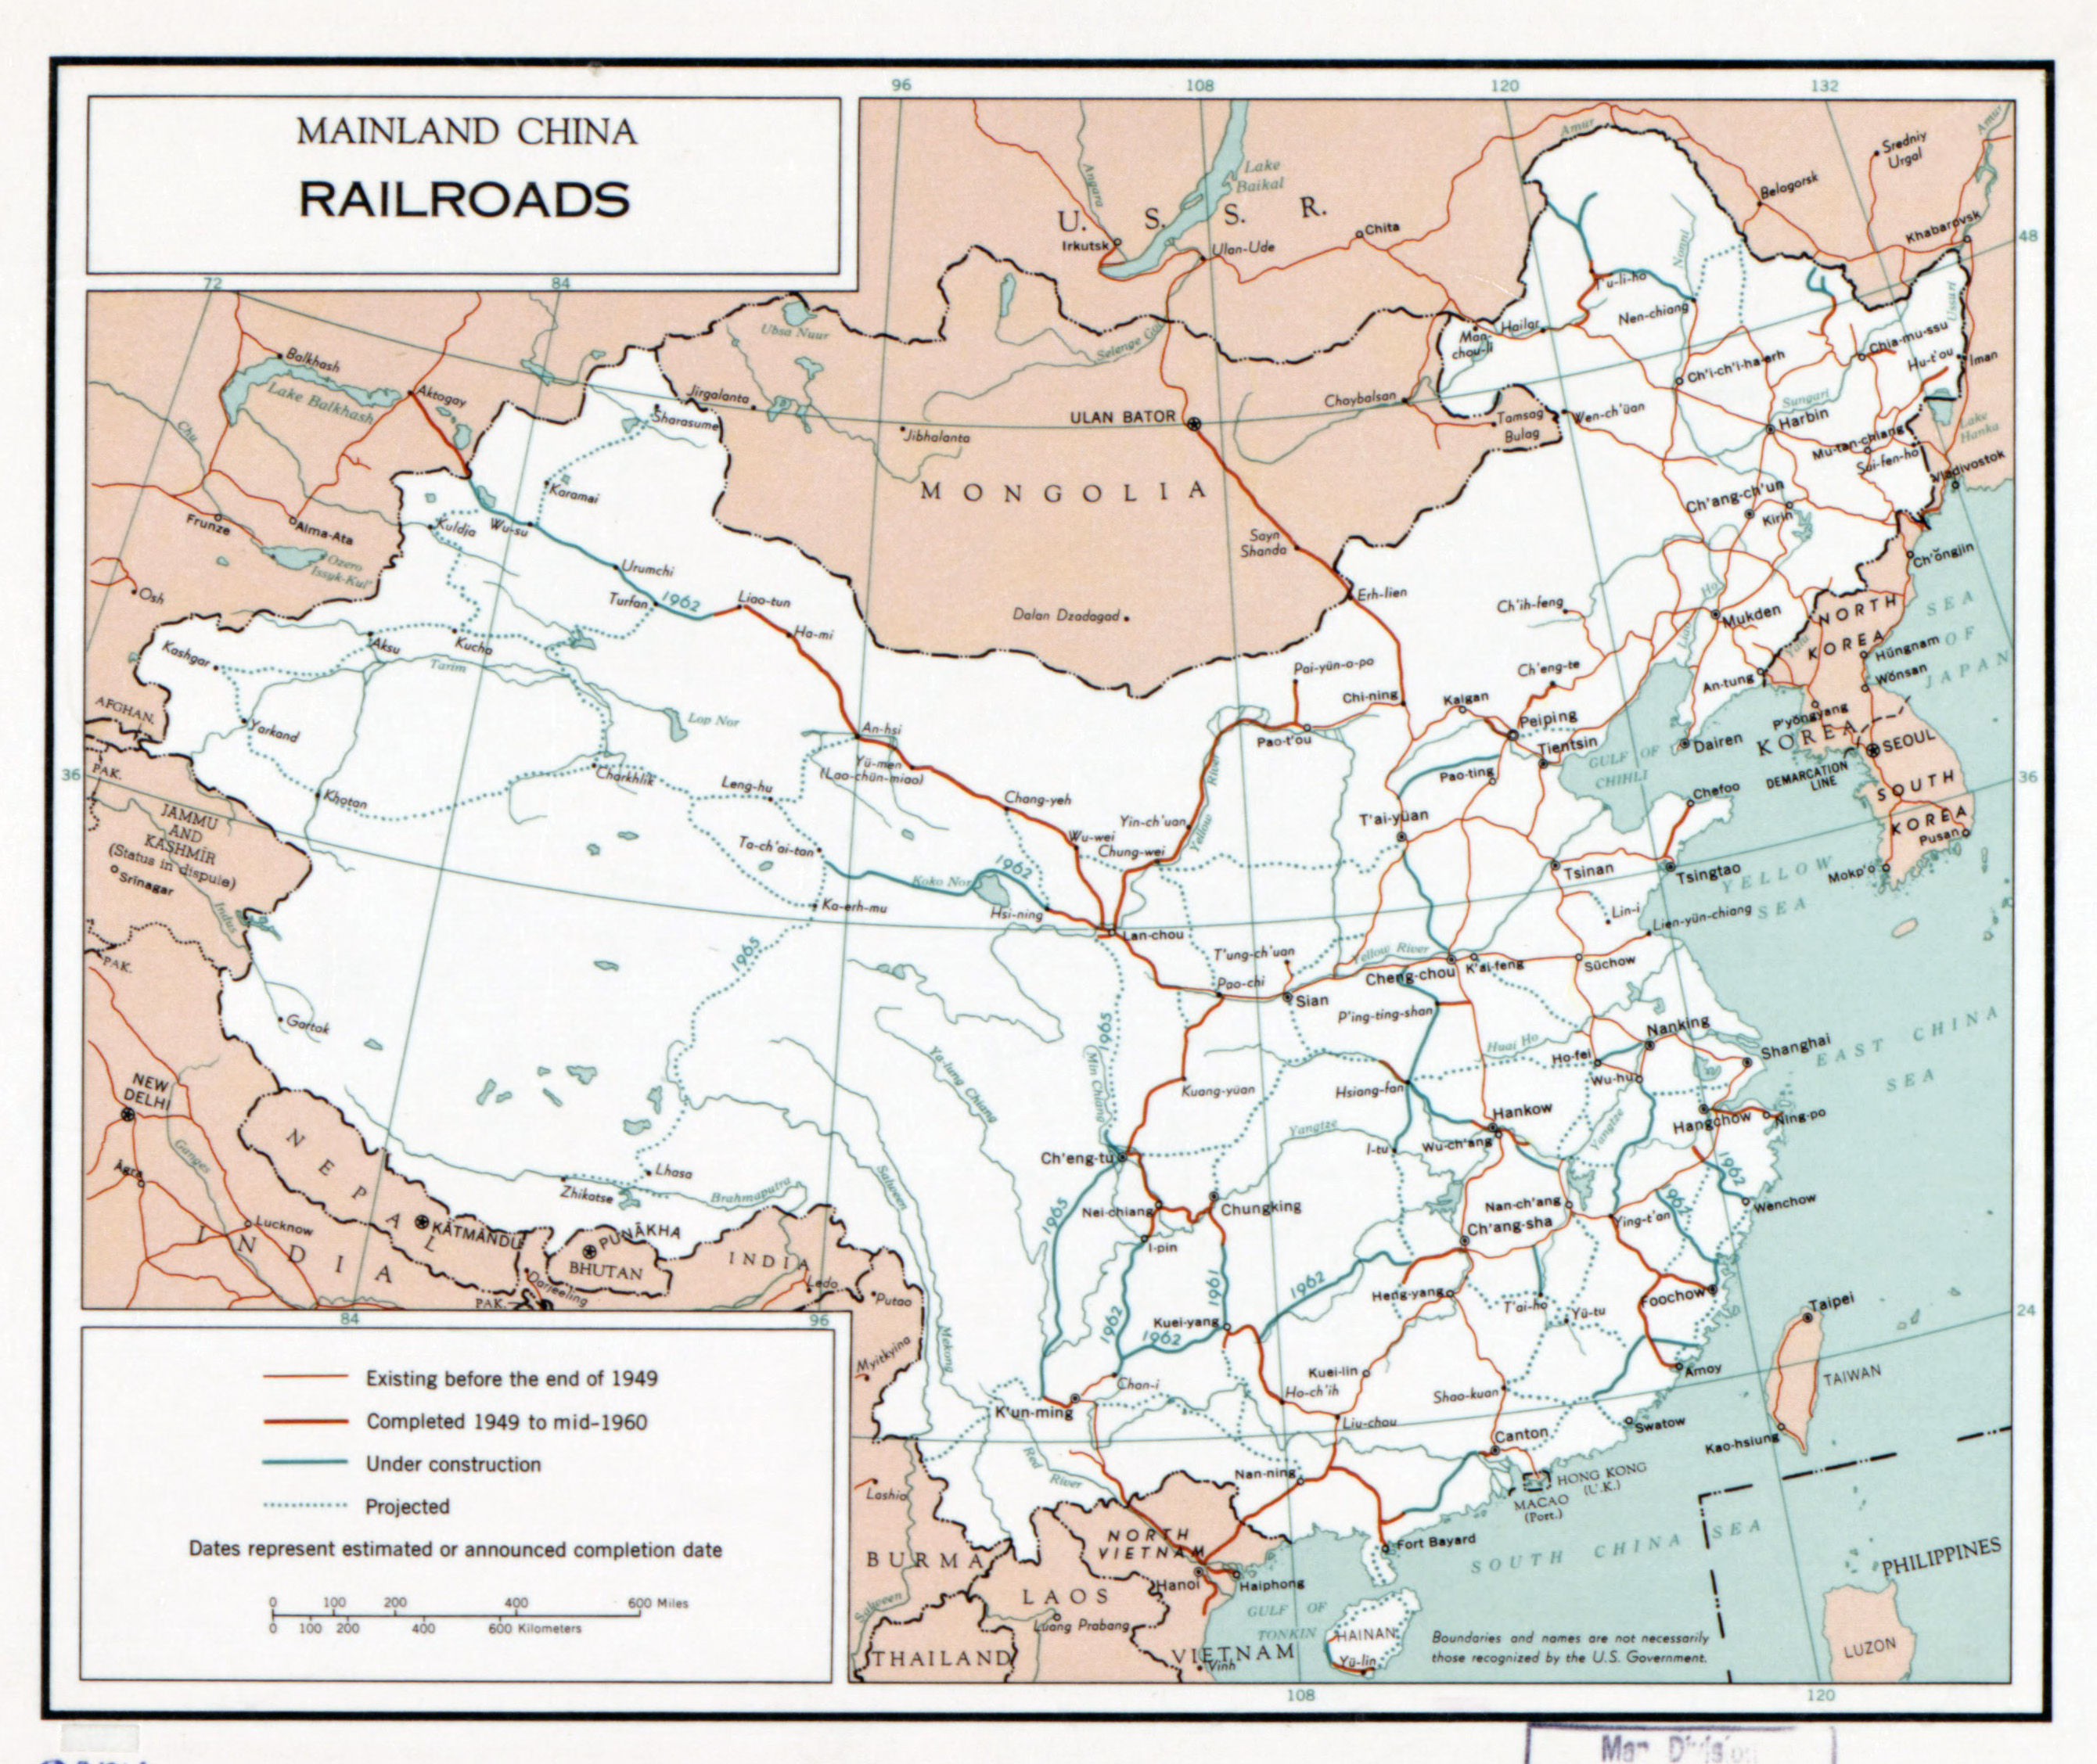 large-detailed-railroads-map-of-mainland-china-1960.jpg